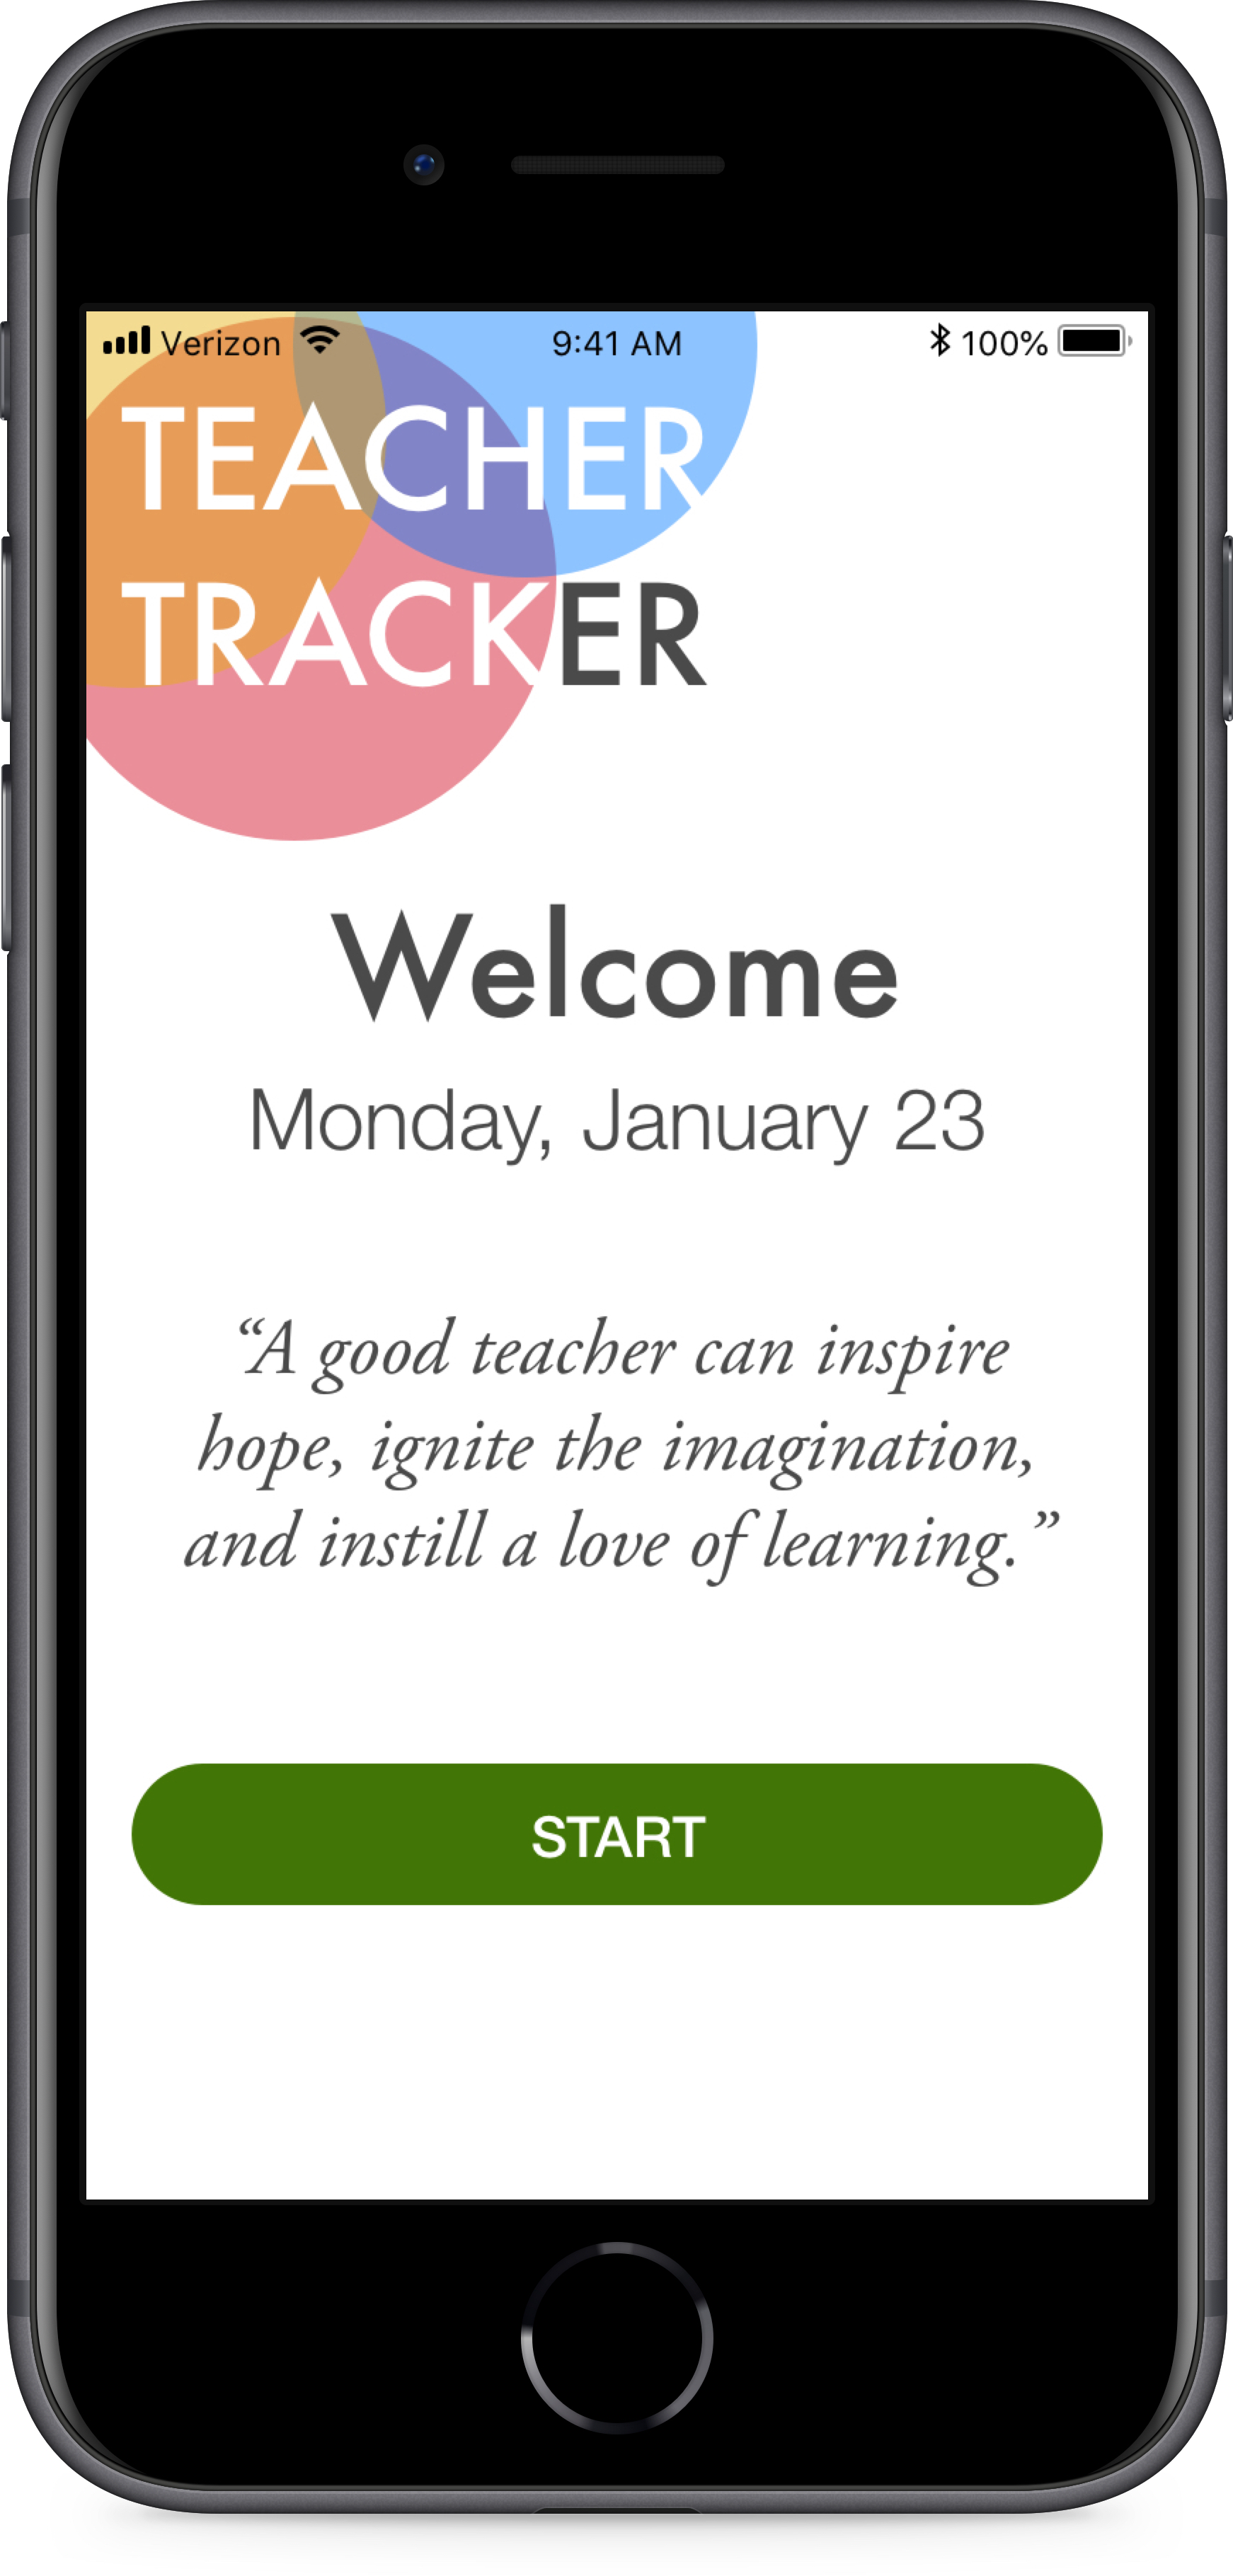 A daily dose of inspiration keeps the teacher inspired and  creates a positive association with the app . This is inspired by the daily calendars many teachers keep on their desks.